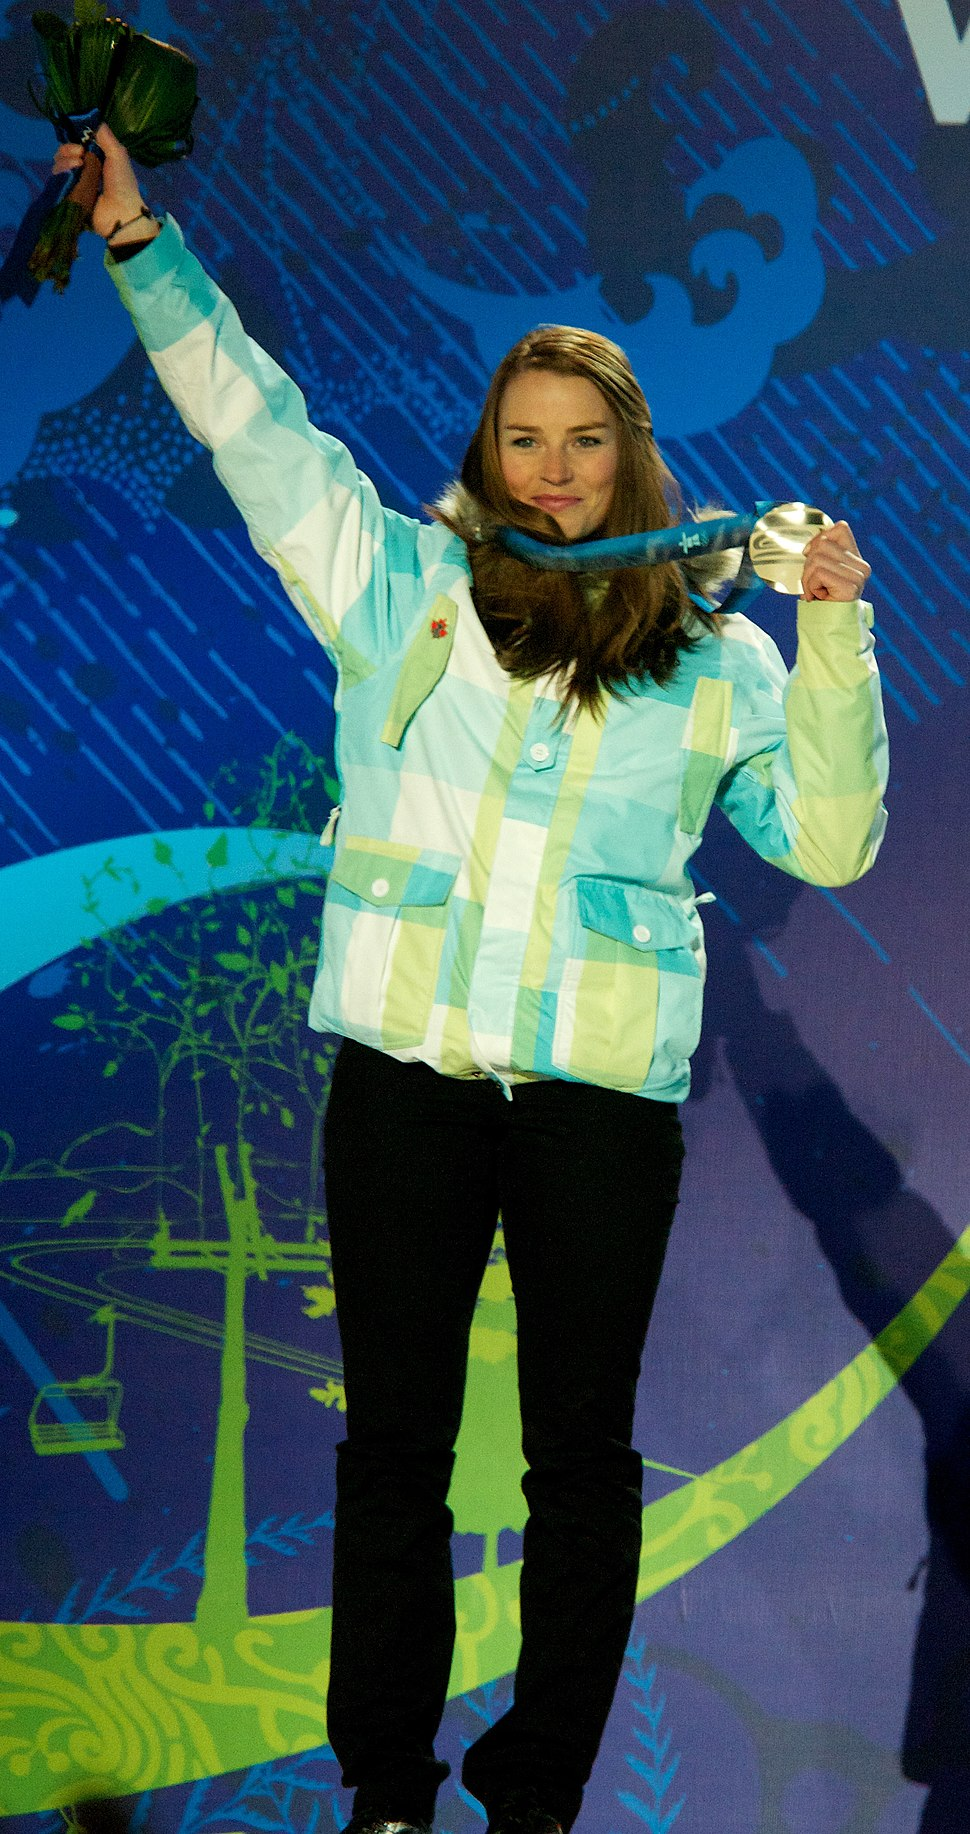 Tina Maze with Olympic silver medal 2010